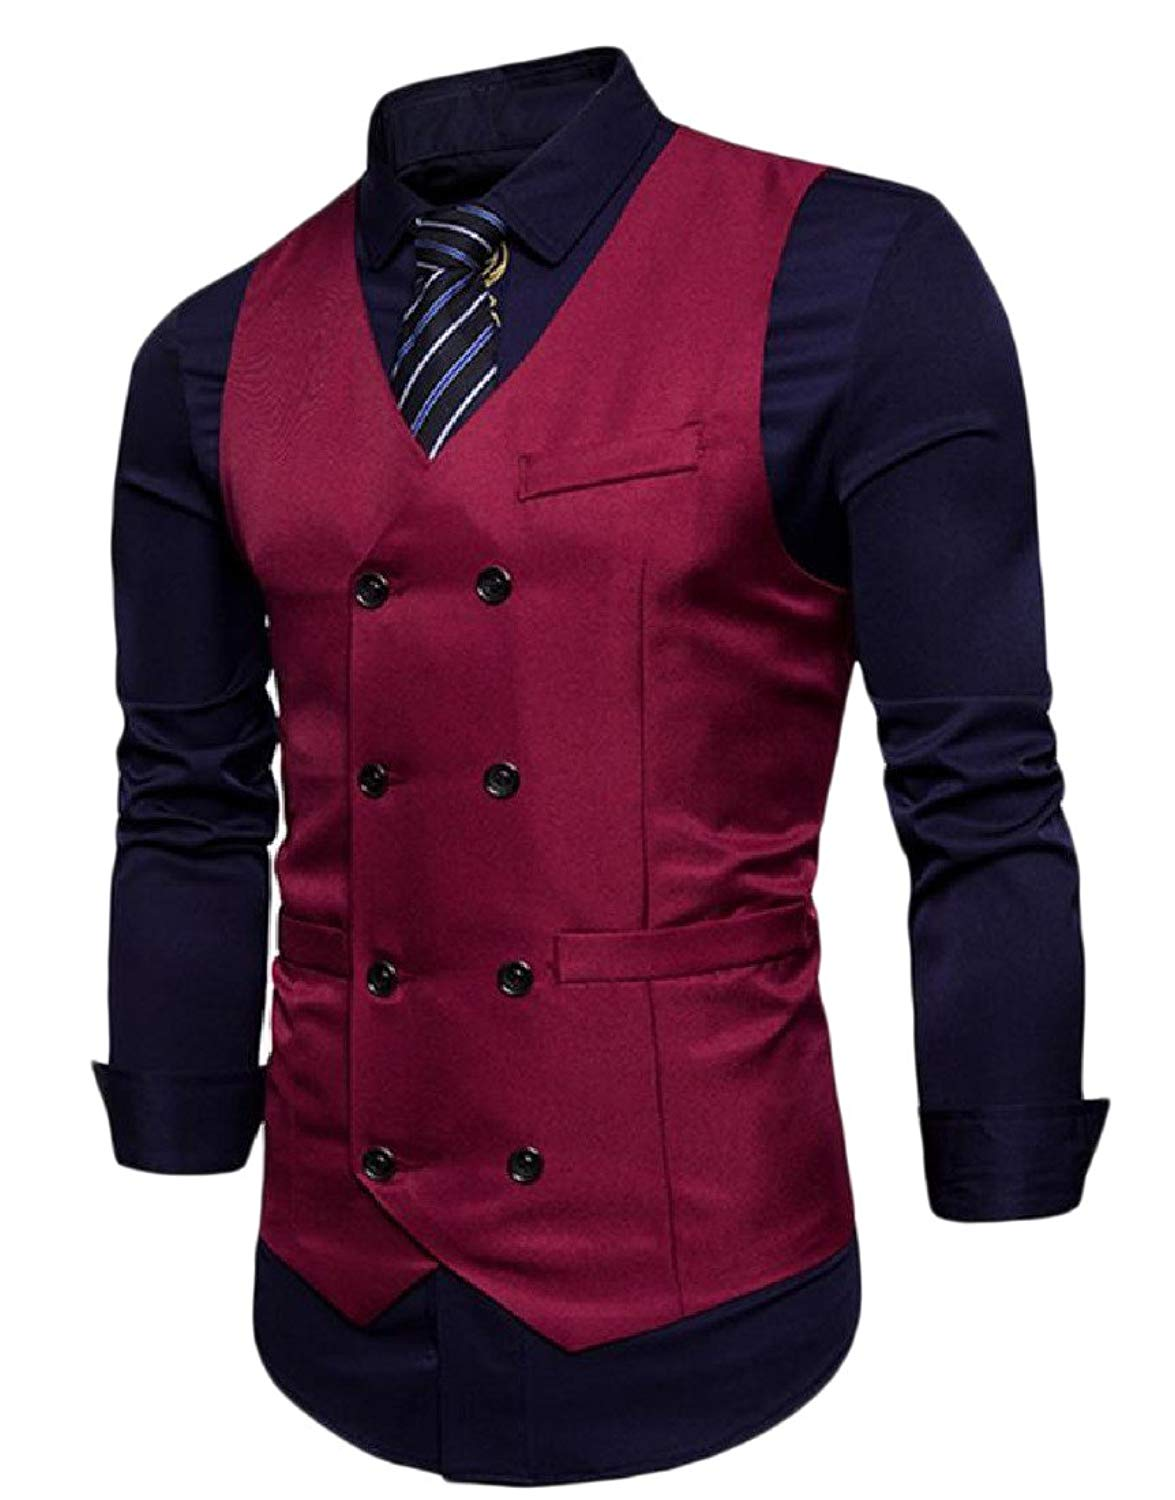 Vivi-Men Double-Breasted Solid Color Trim-Fit Wild Business Waistcoat